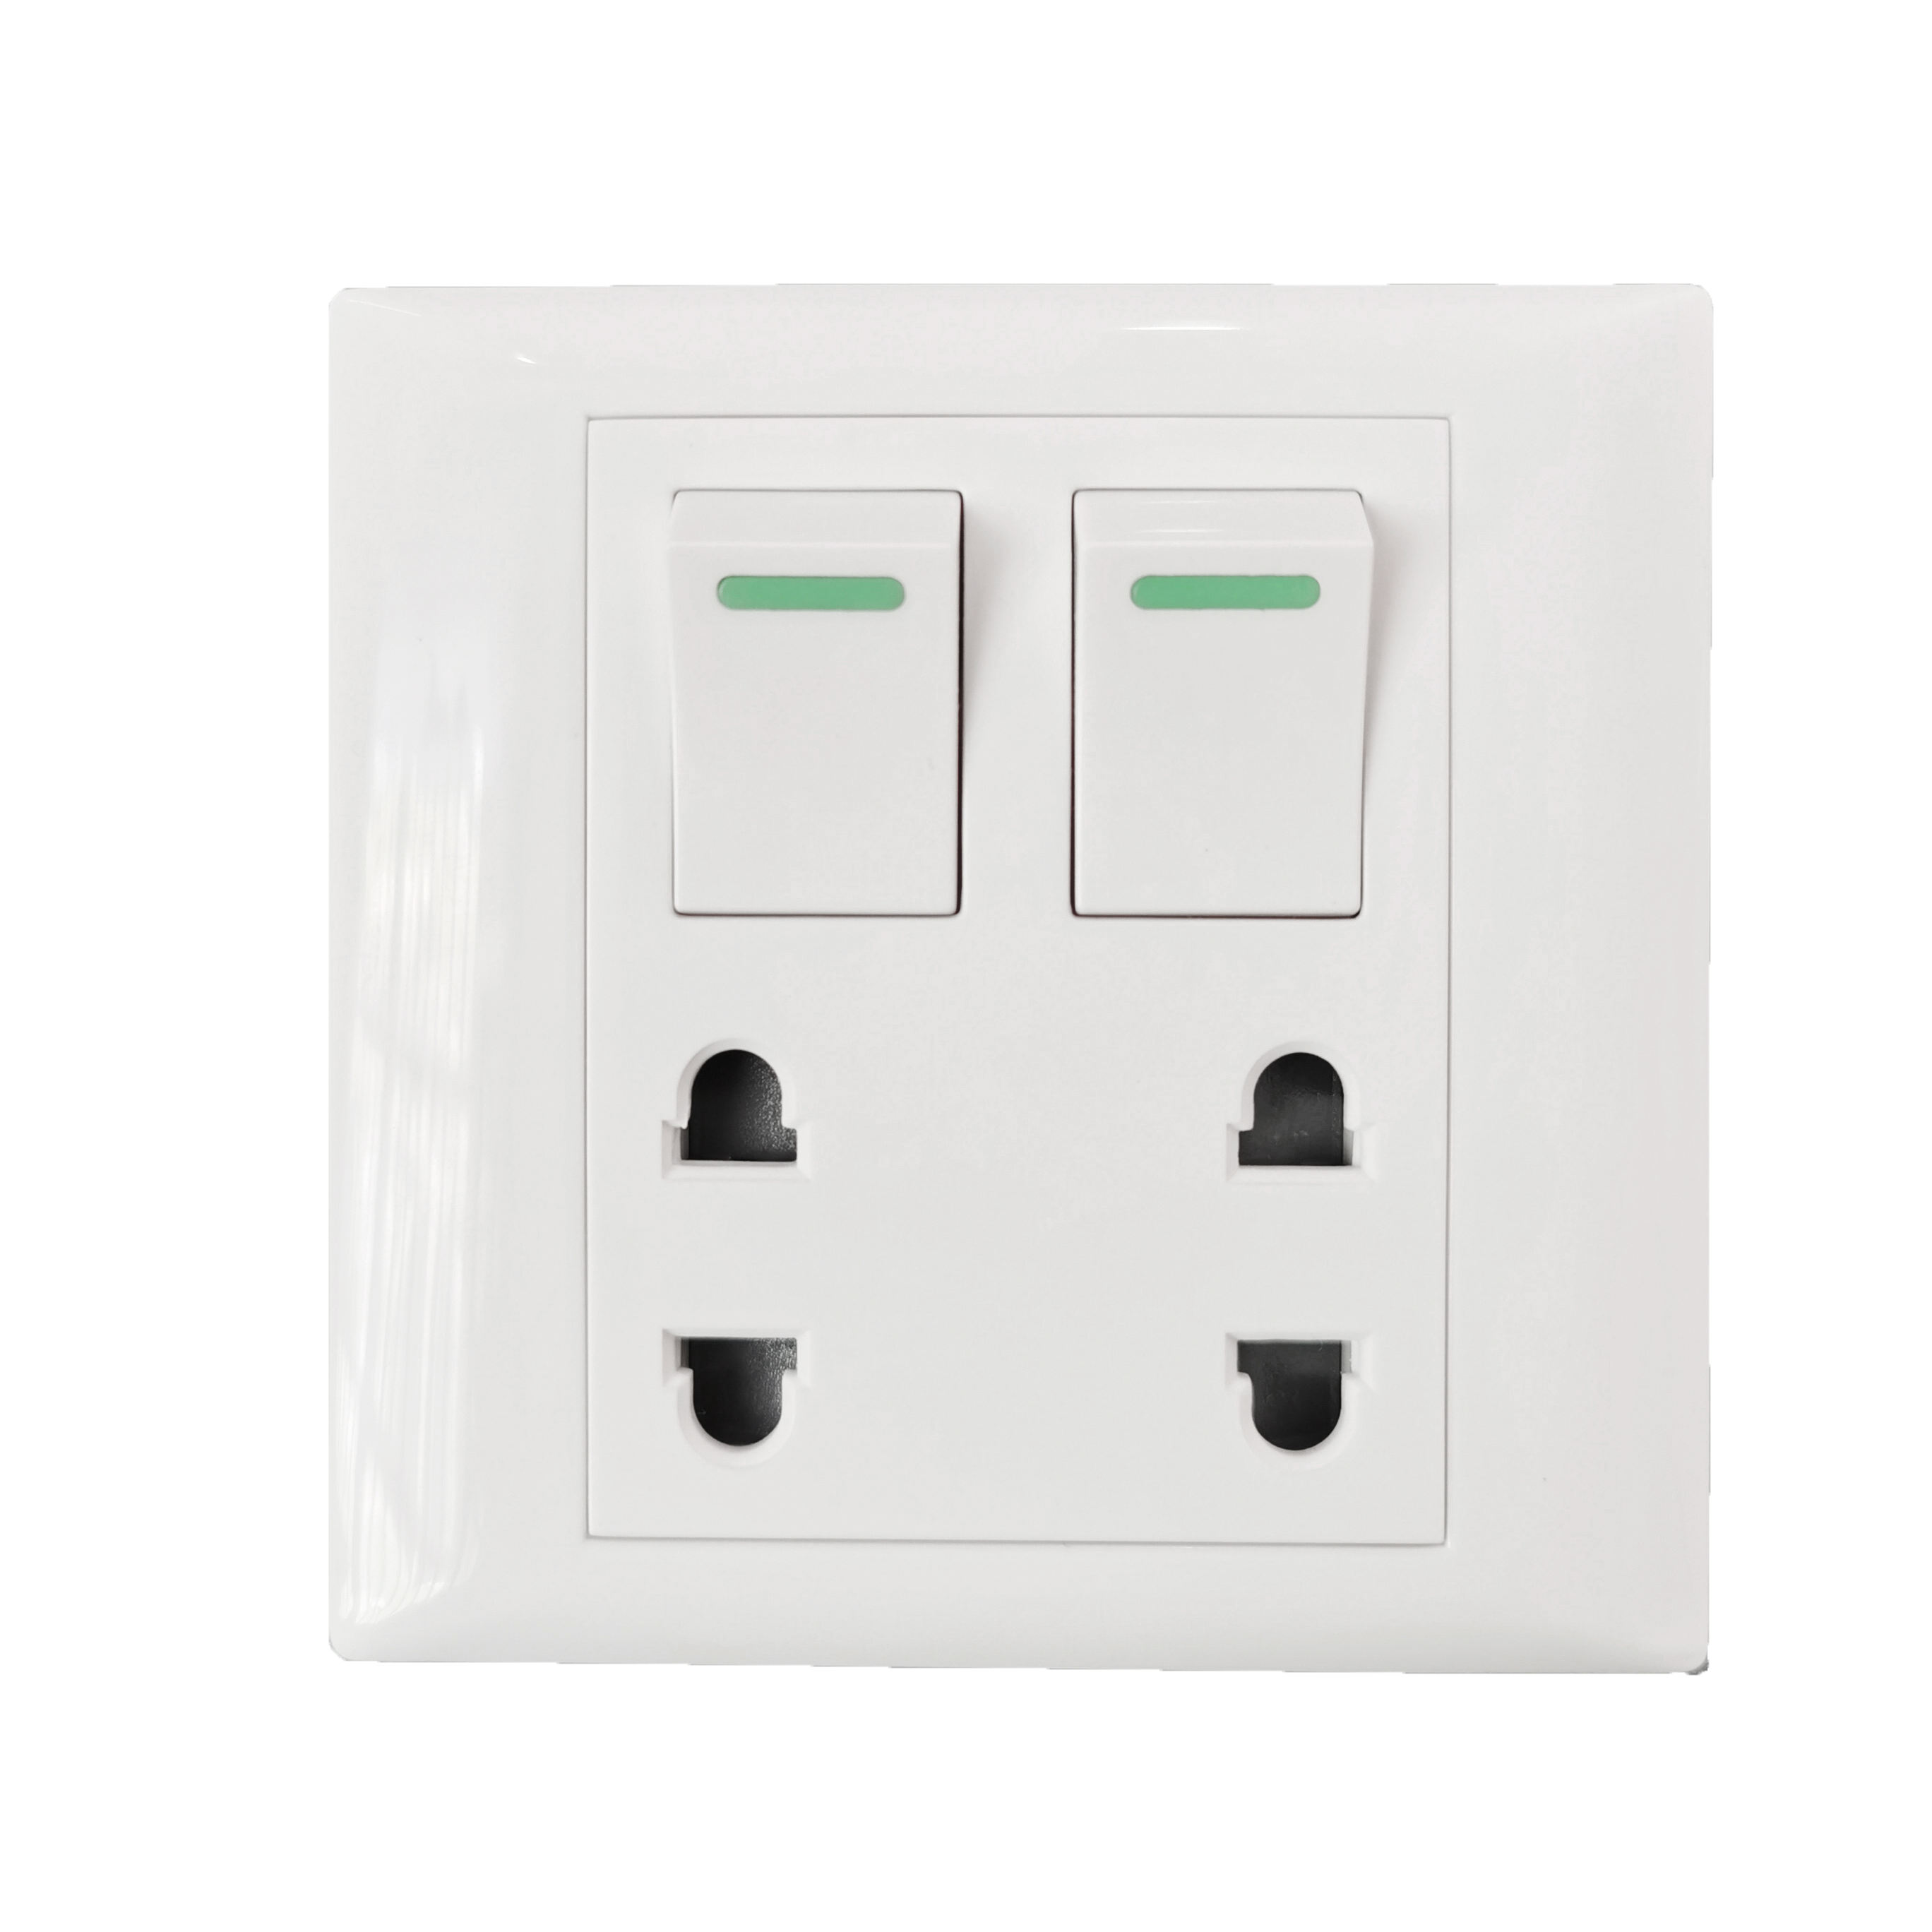 Cambodia 2 switch 2 sockets 4 holes light switch sockets electrical switch socket wall